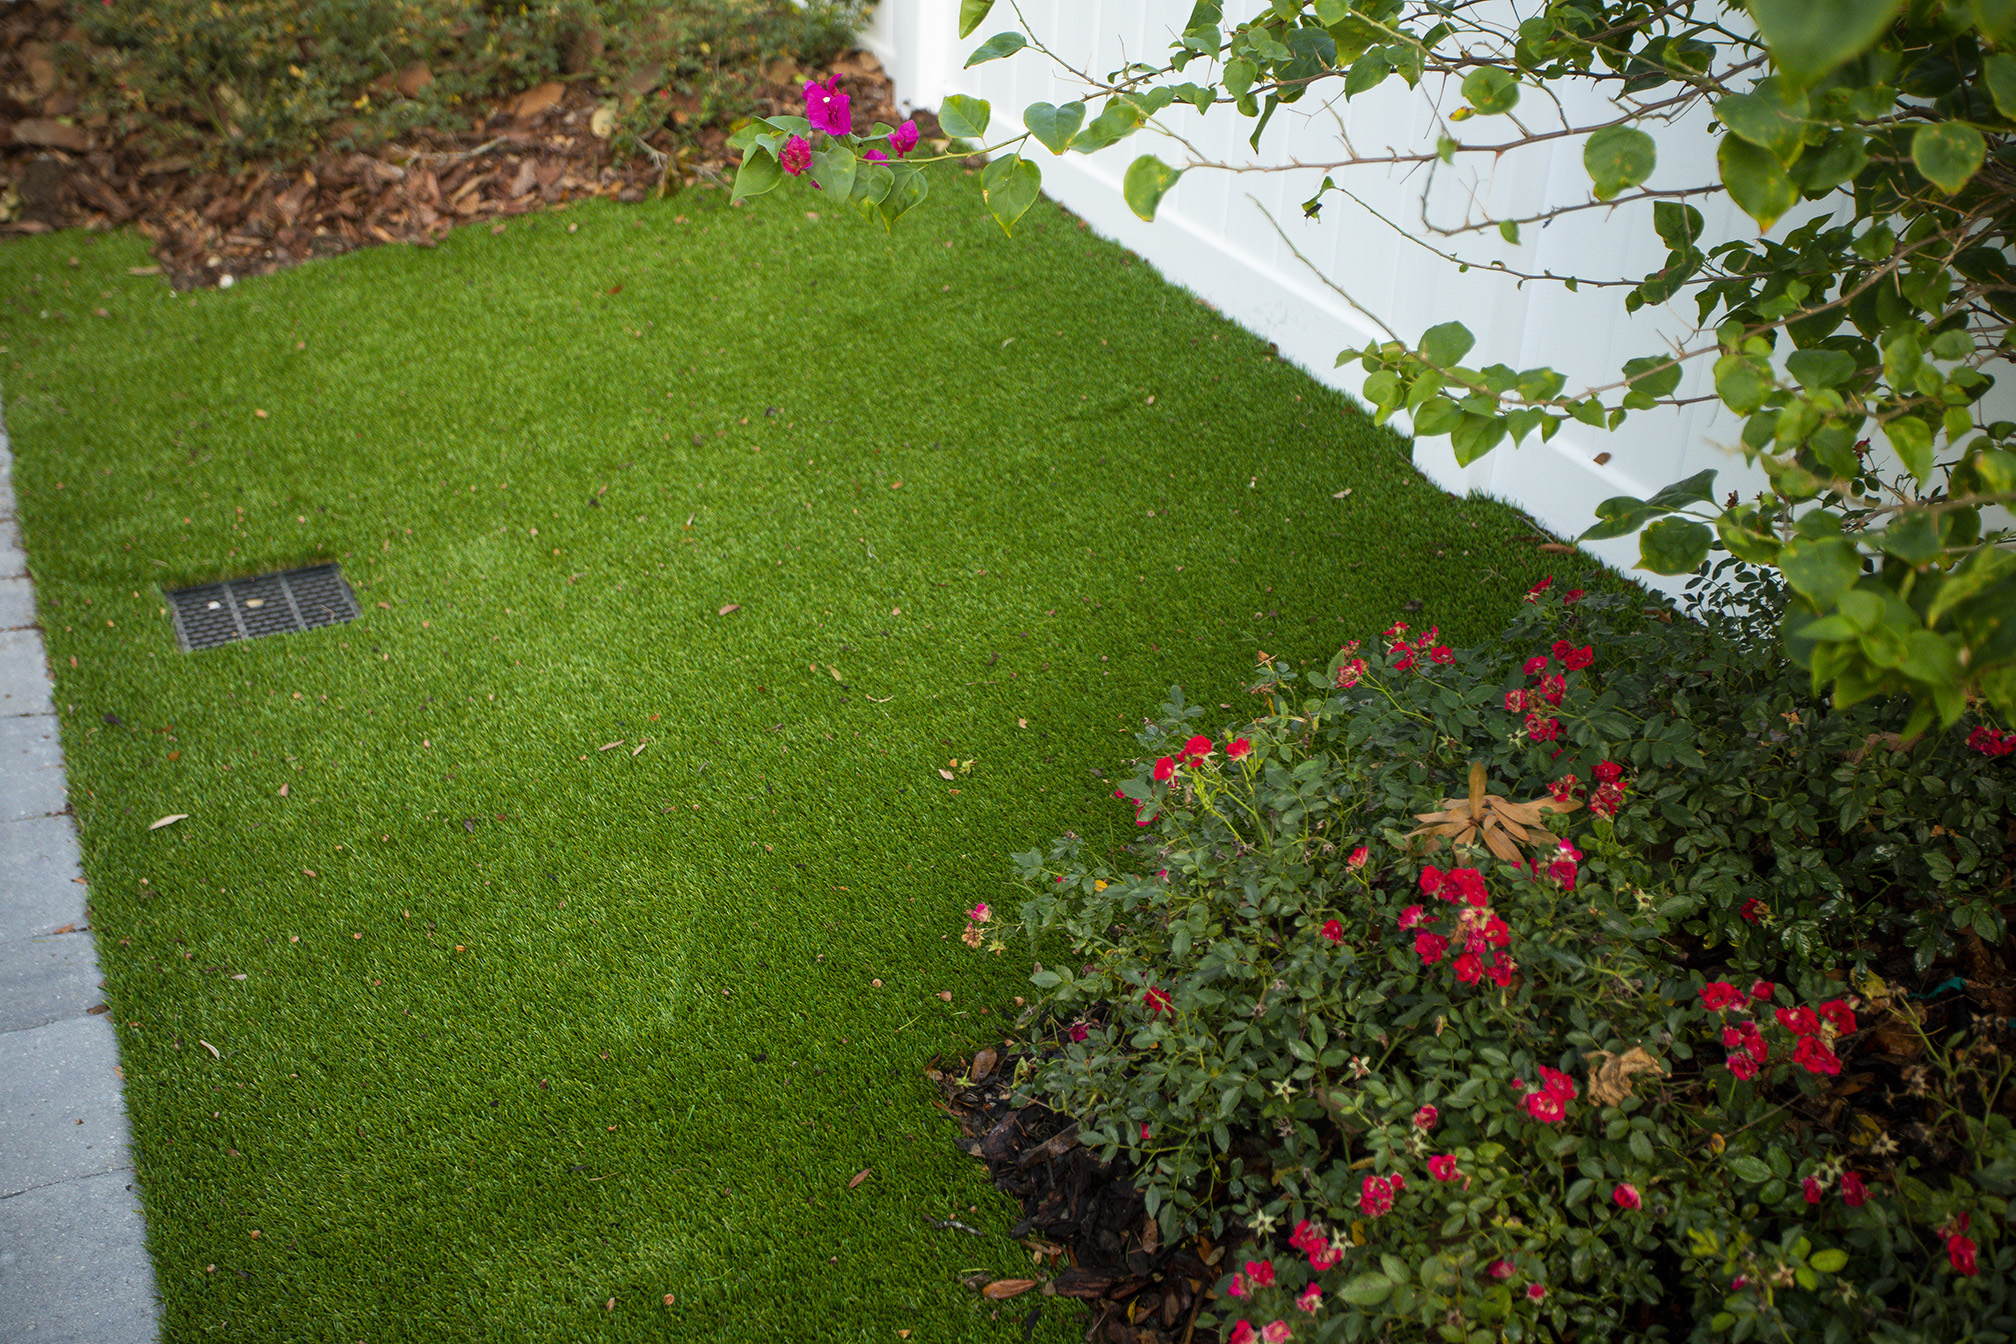 Lawn with artificial turf in Florida